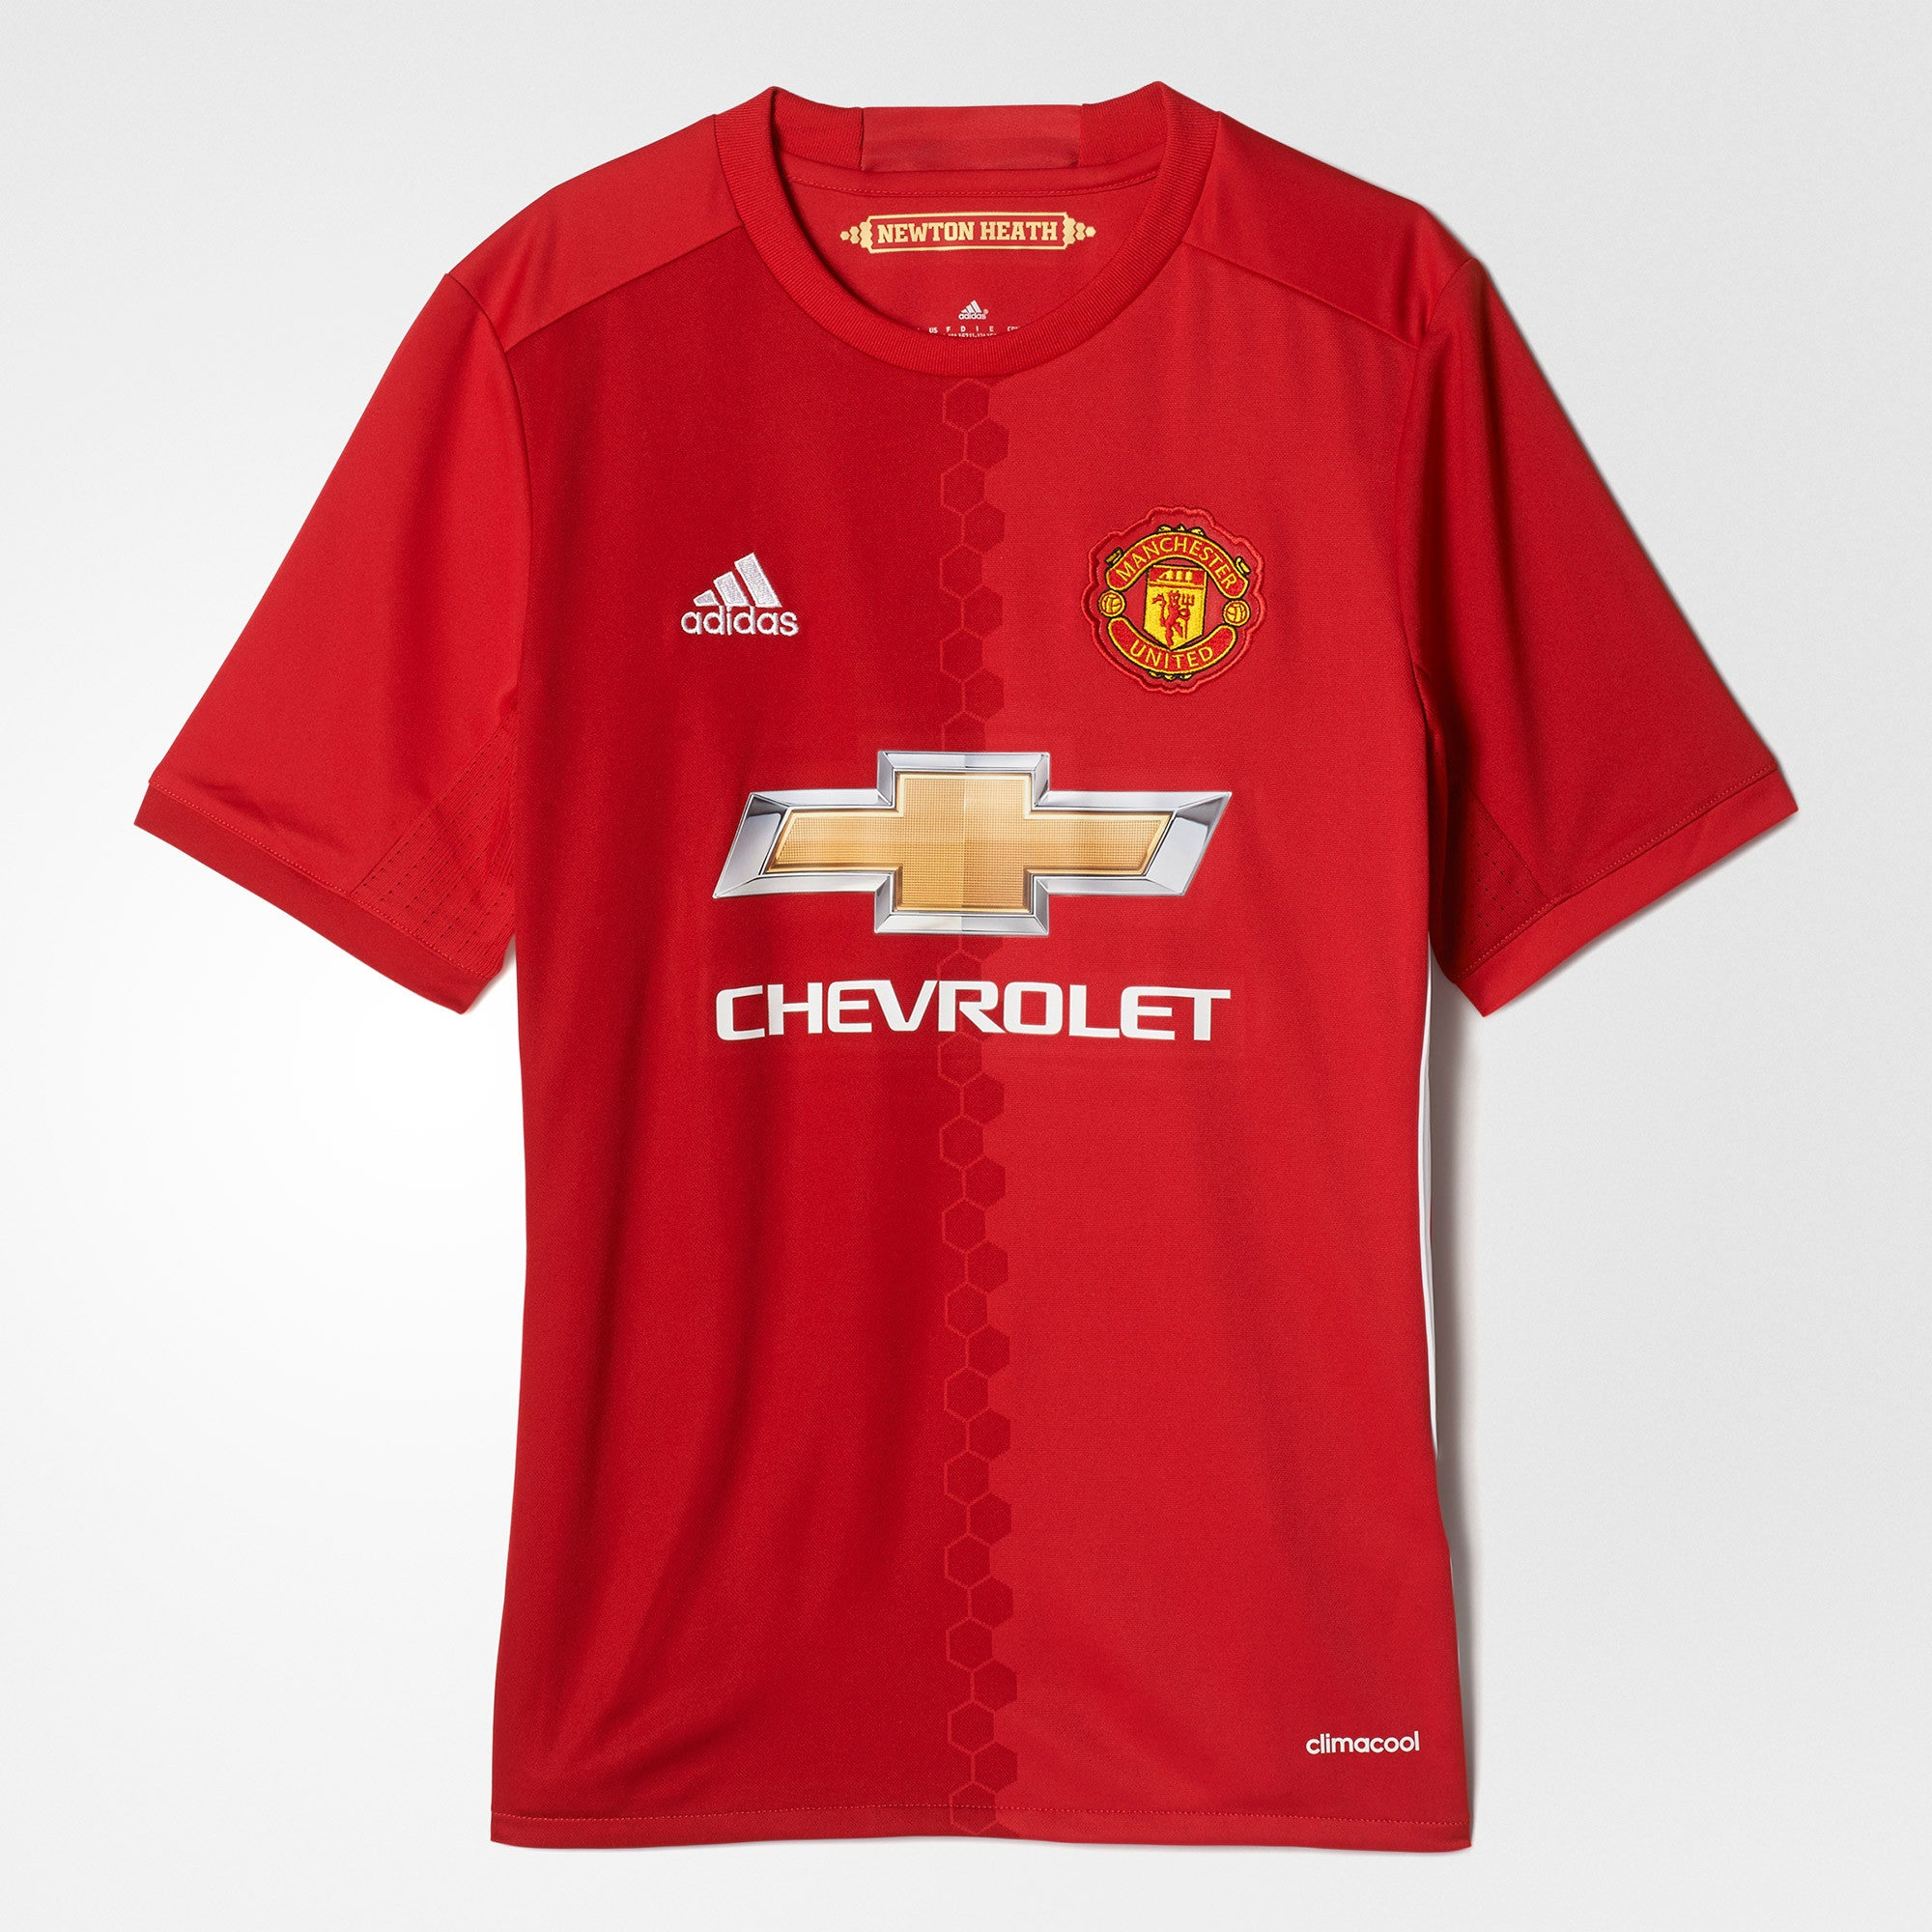 Ibrahimovic Boys and Youth Jersey Manchester United 16-17 , ibrahimovic jersey manchester united youth and boys - Nike, G2G Sport Chicago